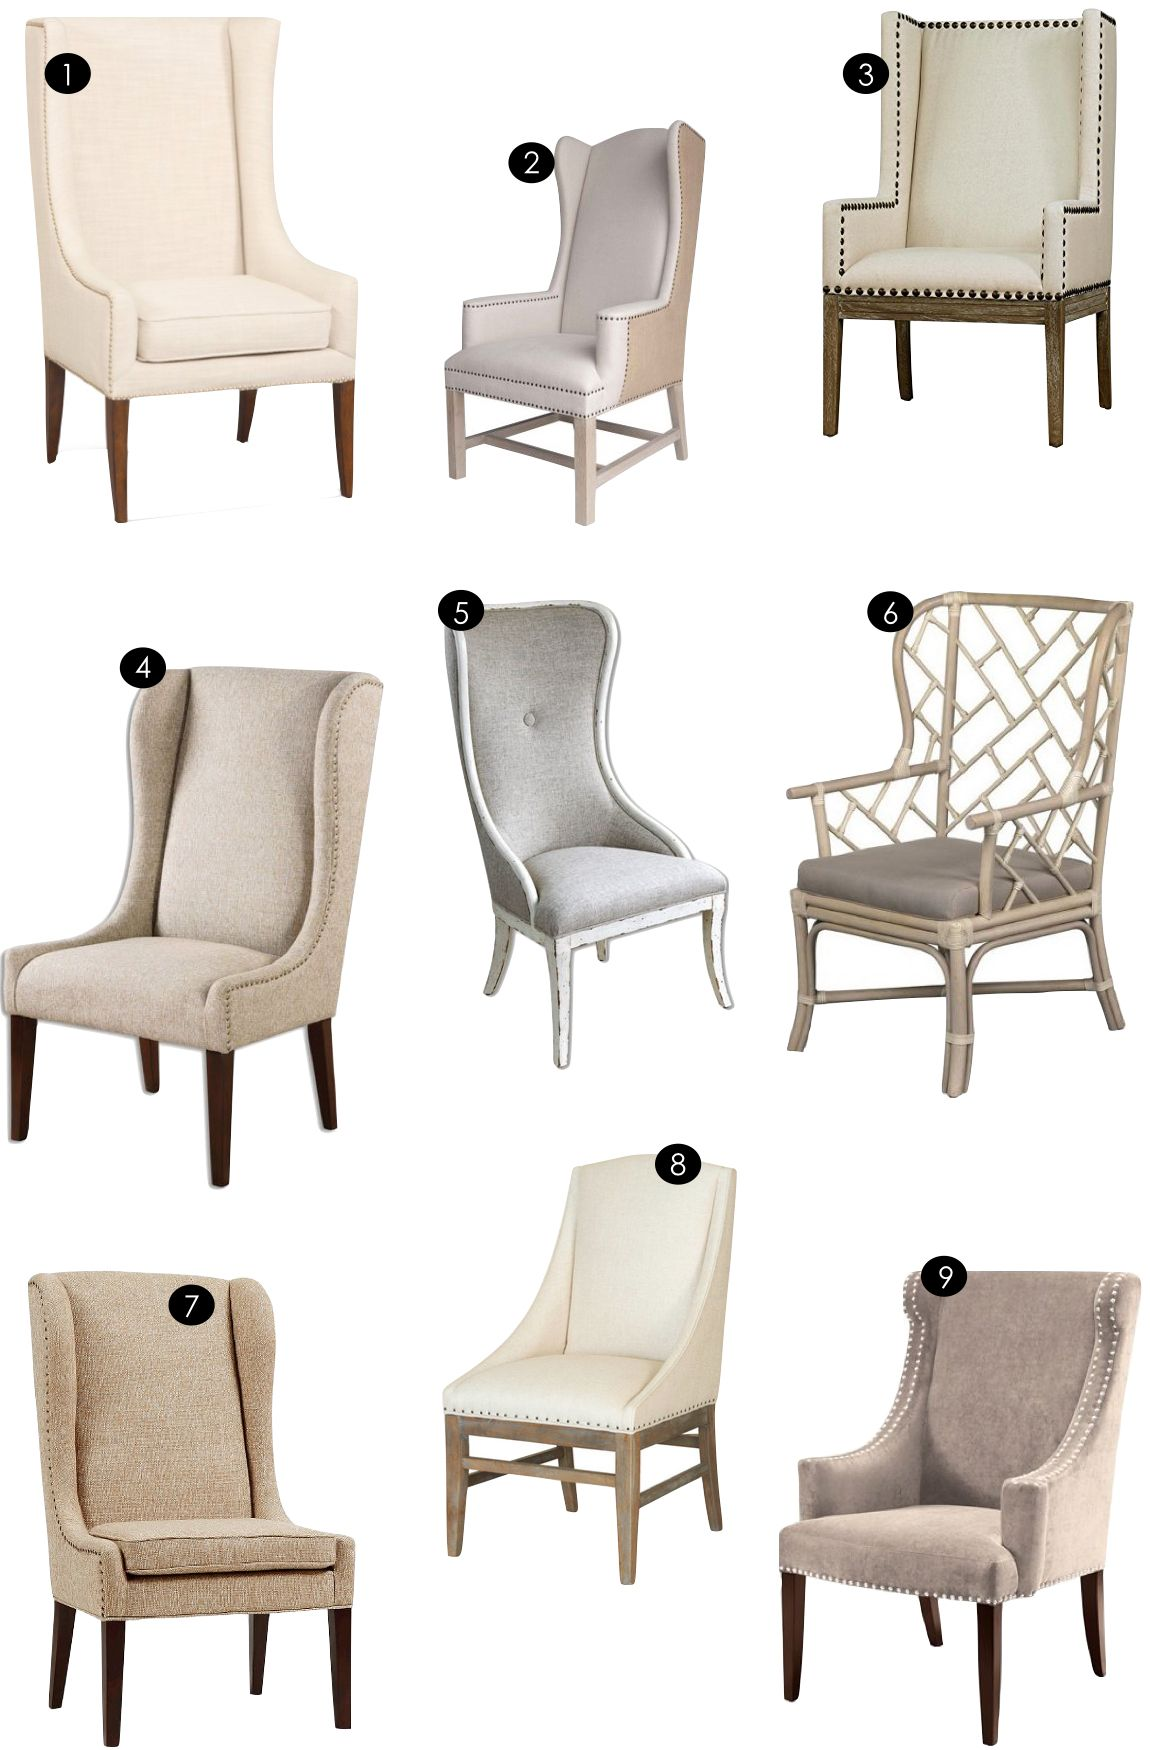 Host + Hostess Chairs | Kikiu0027s List. Are Any Available Without The Nailhead  ...